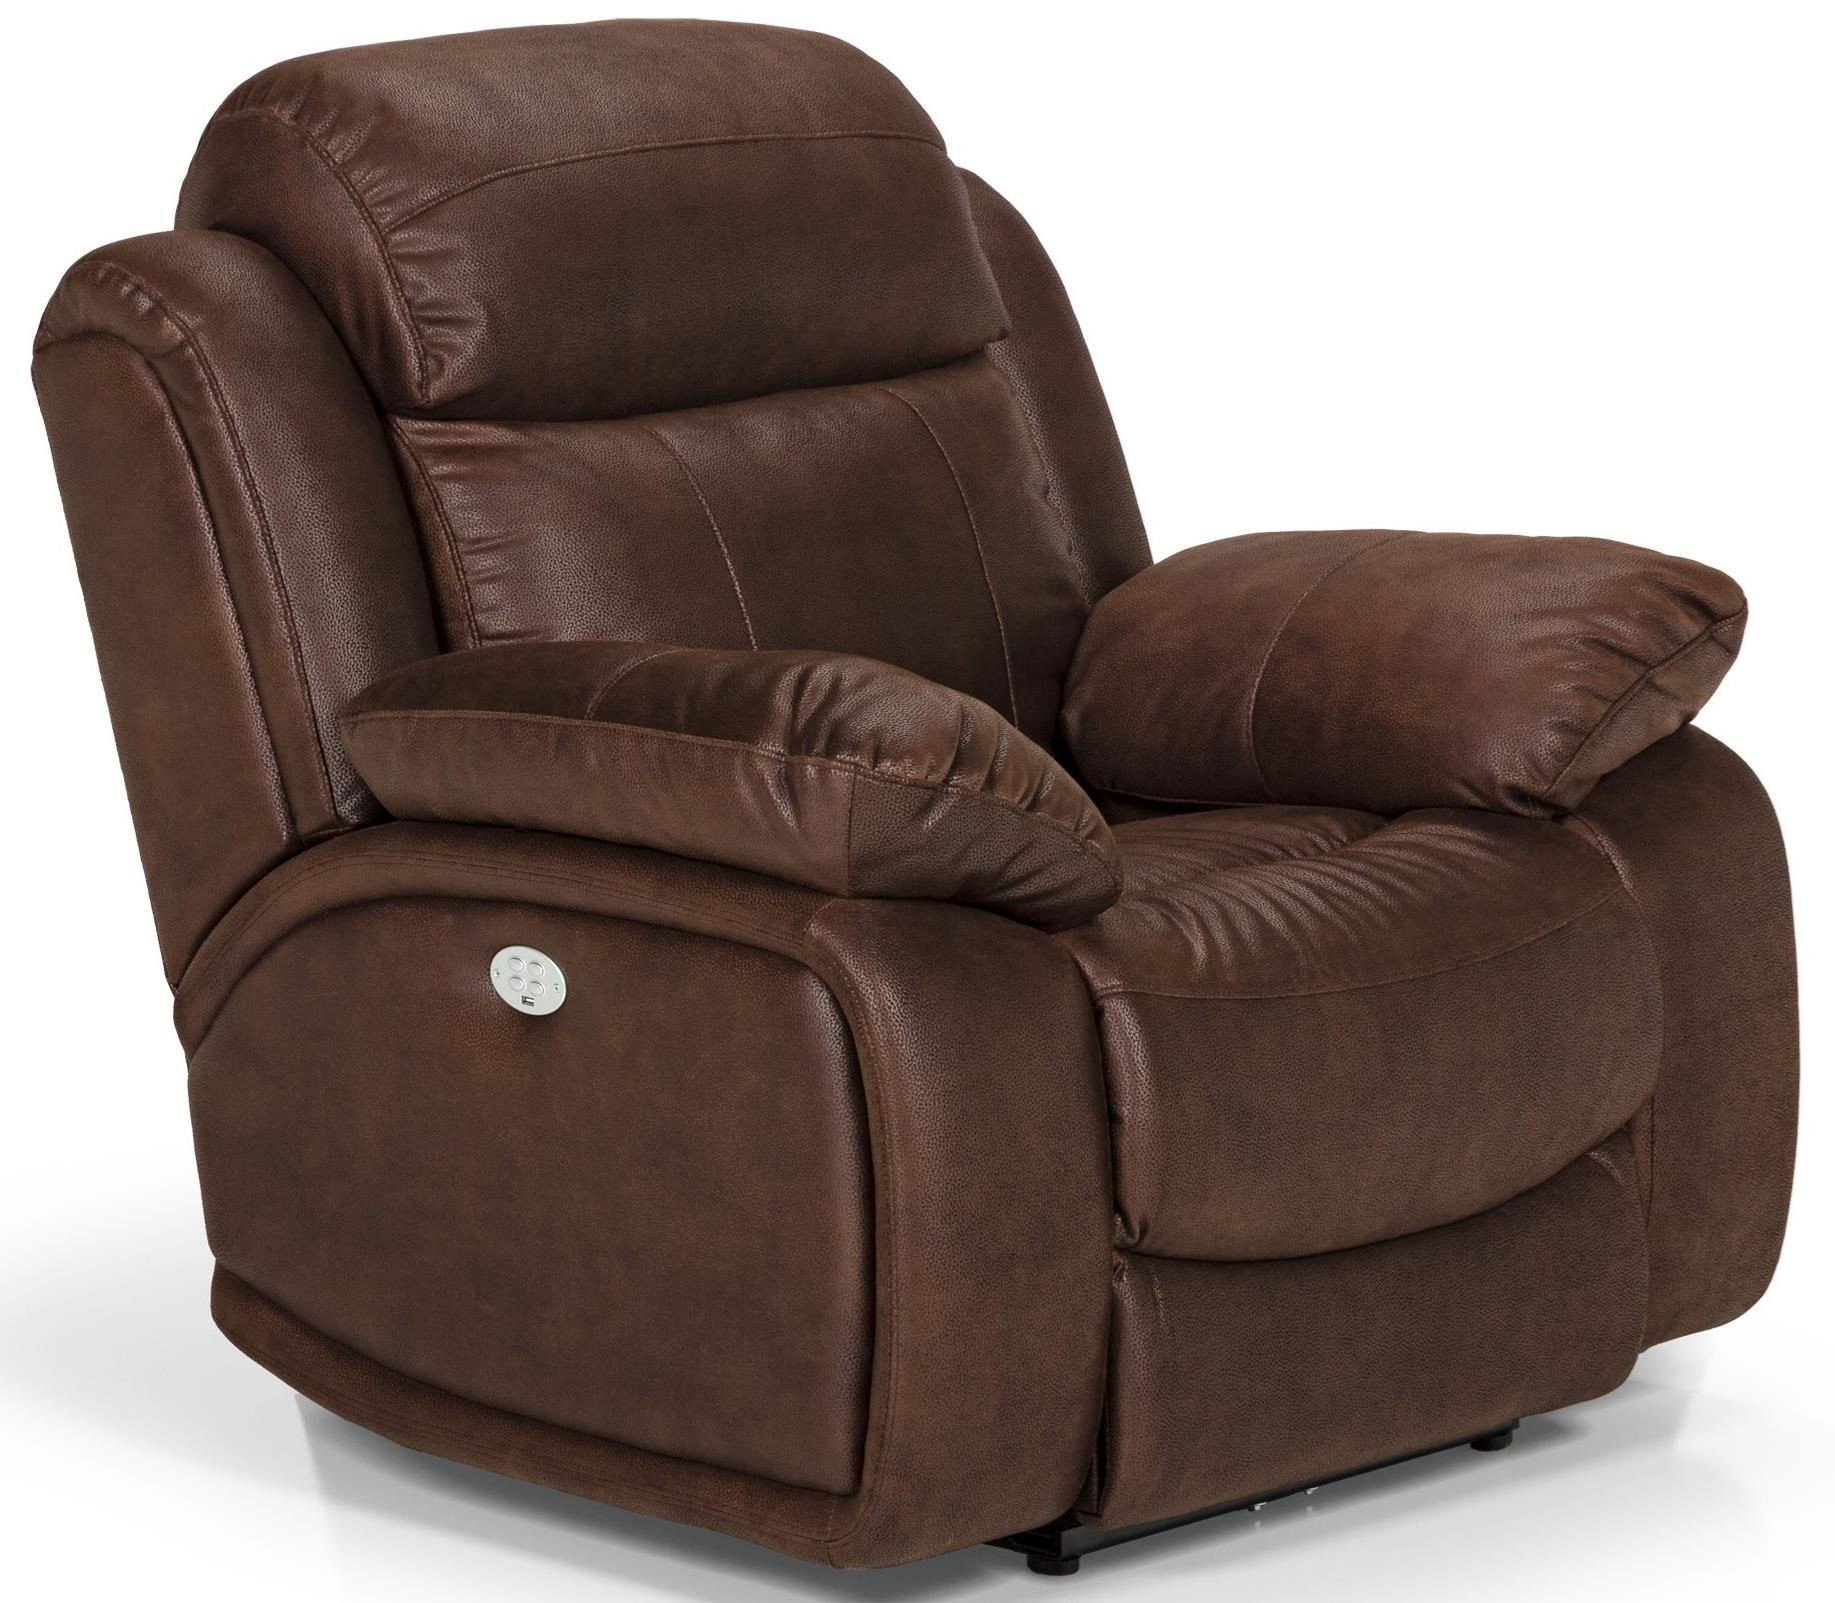 Stanton 853 Power Reclining Chair - Item Number 853-53PH  sc 1 st  Rifeu0027s Home Furniture & Stanton 853 Power Reclining Chair with Power Headrest - Rifeu0027s ... islam-shia.org